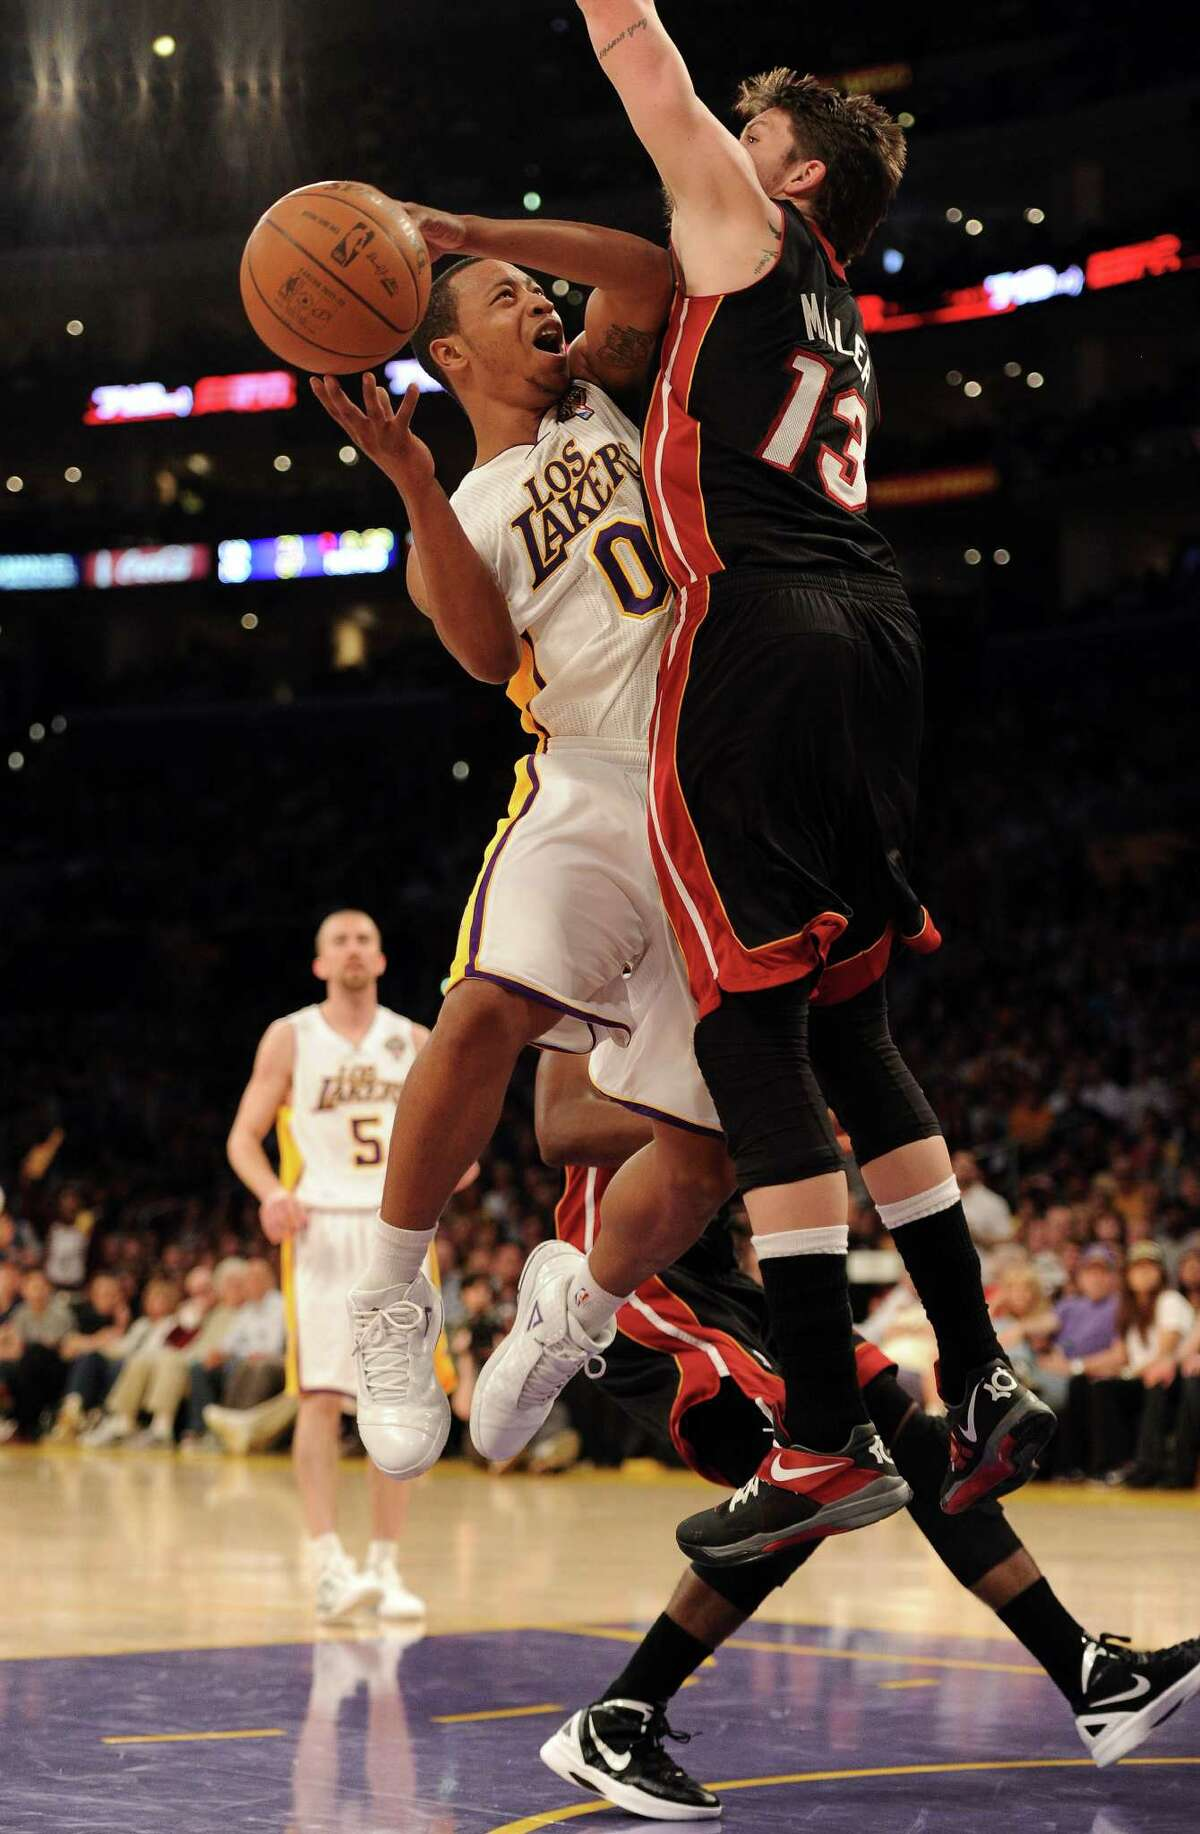 LOS ANGELES, CA - MARCH 04: Andrew Goudelock #0 of the Los Angeles Lakers has his shot blocked by Mike Miller #13 of the Miami Heat during the game at Staples Center on March 4, 2012 in Los Angeles, California. NOTE TO USER: User expressly acknowledges and agrees that, by downloading and or using this photograph, User is consenting to the terms and conditions of the Getty Images License Agreement.